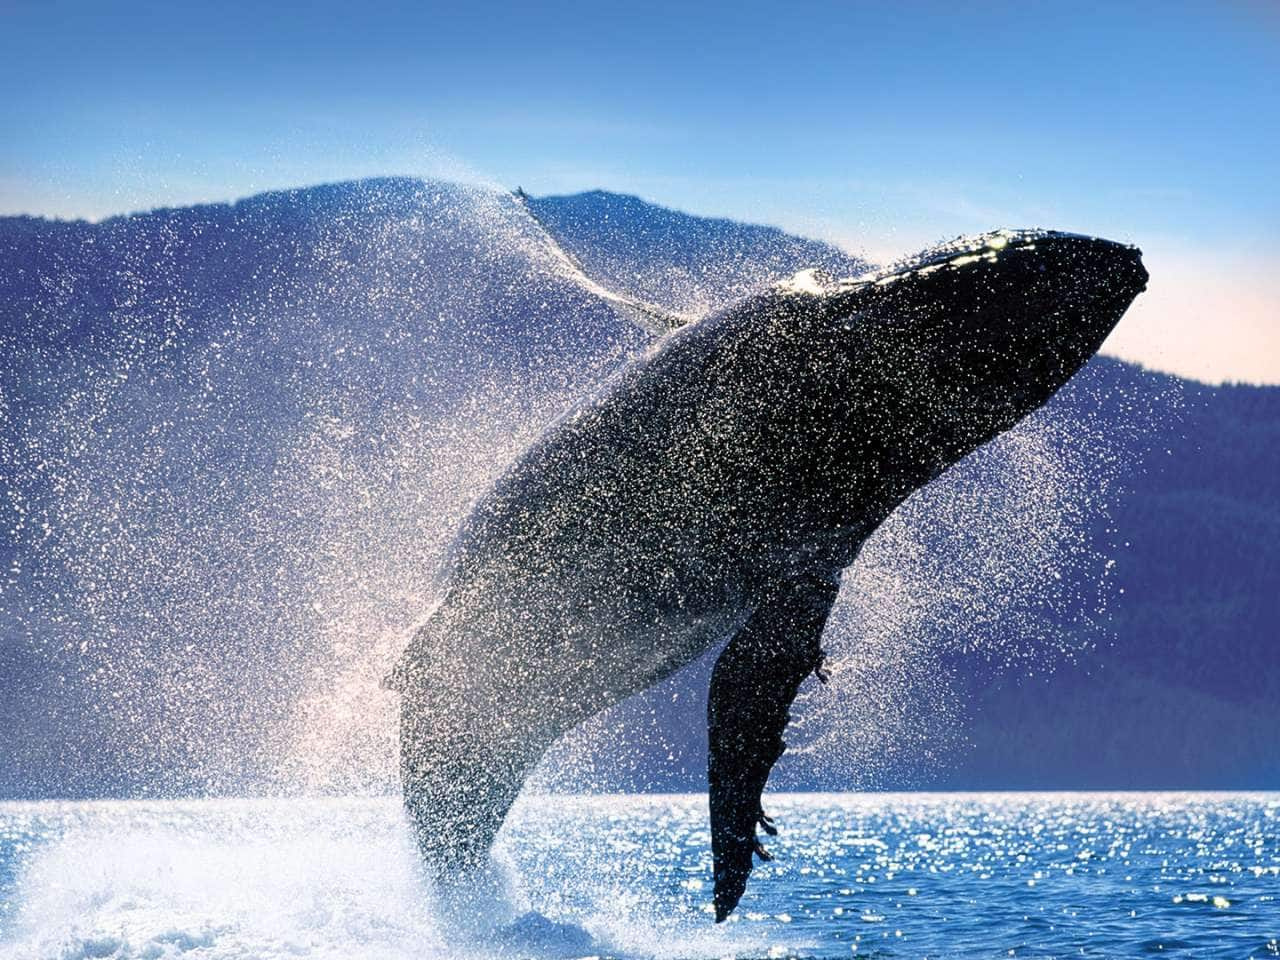 Whale watching on an Alaska cruise